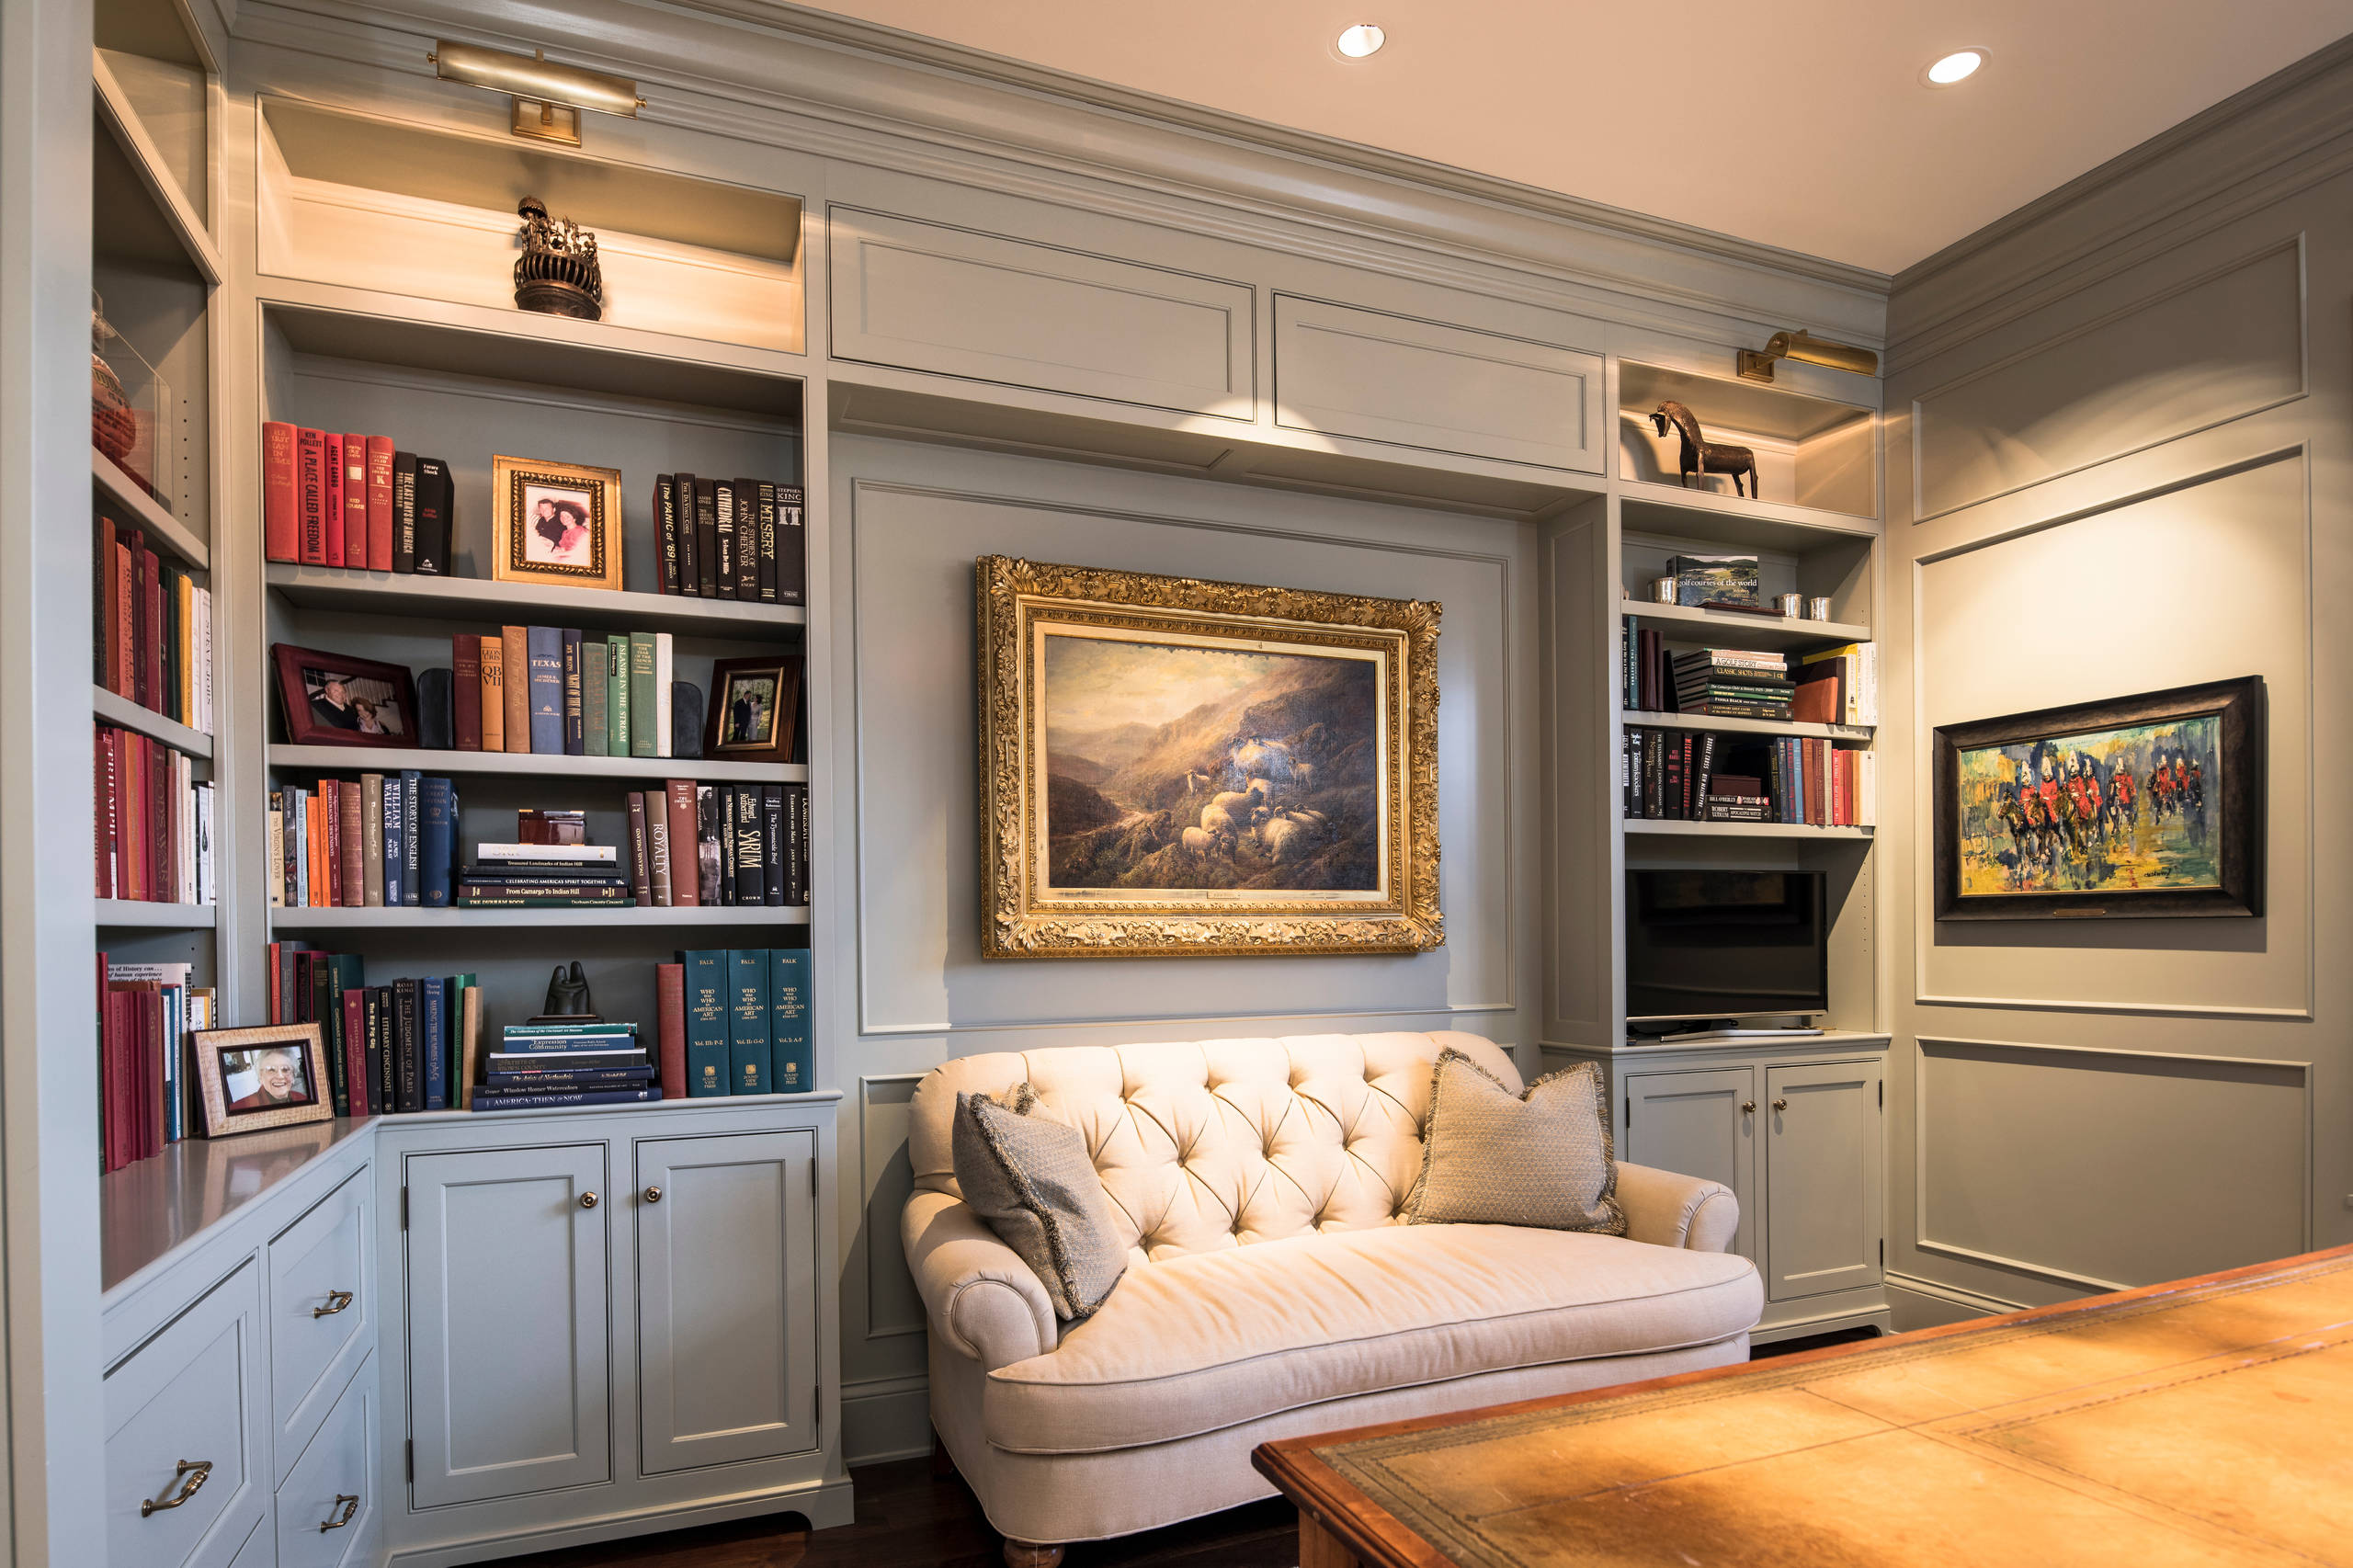 5th Avenue Style by Don Justice Cabinet Makers